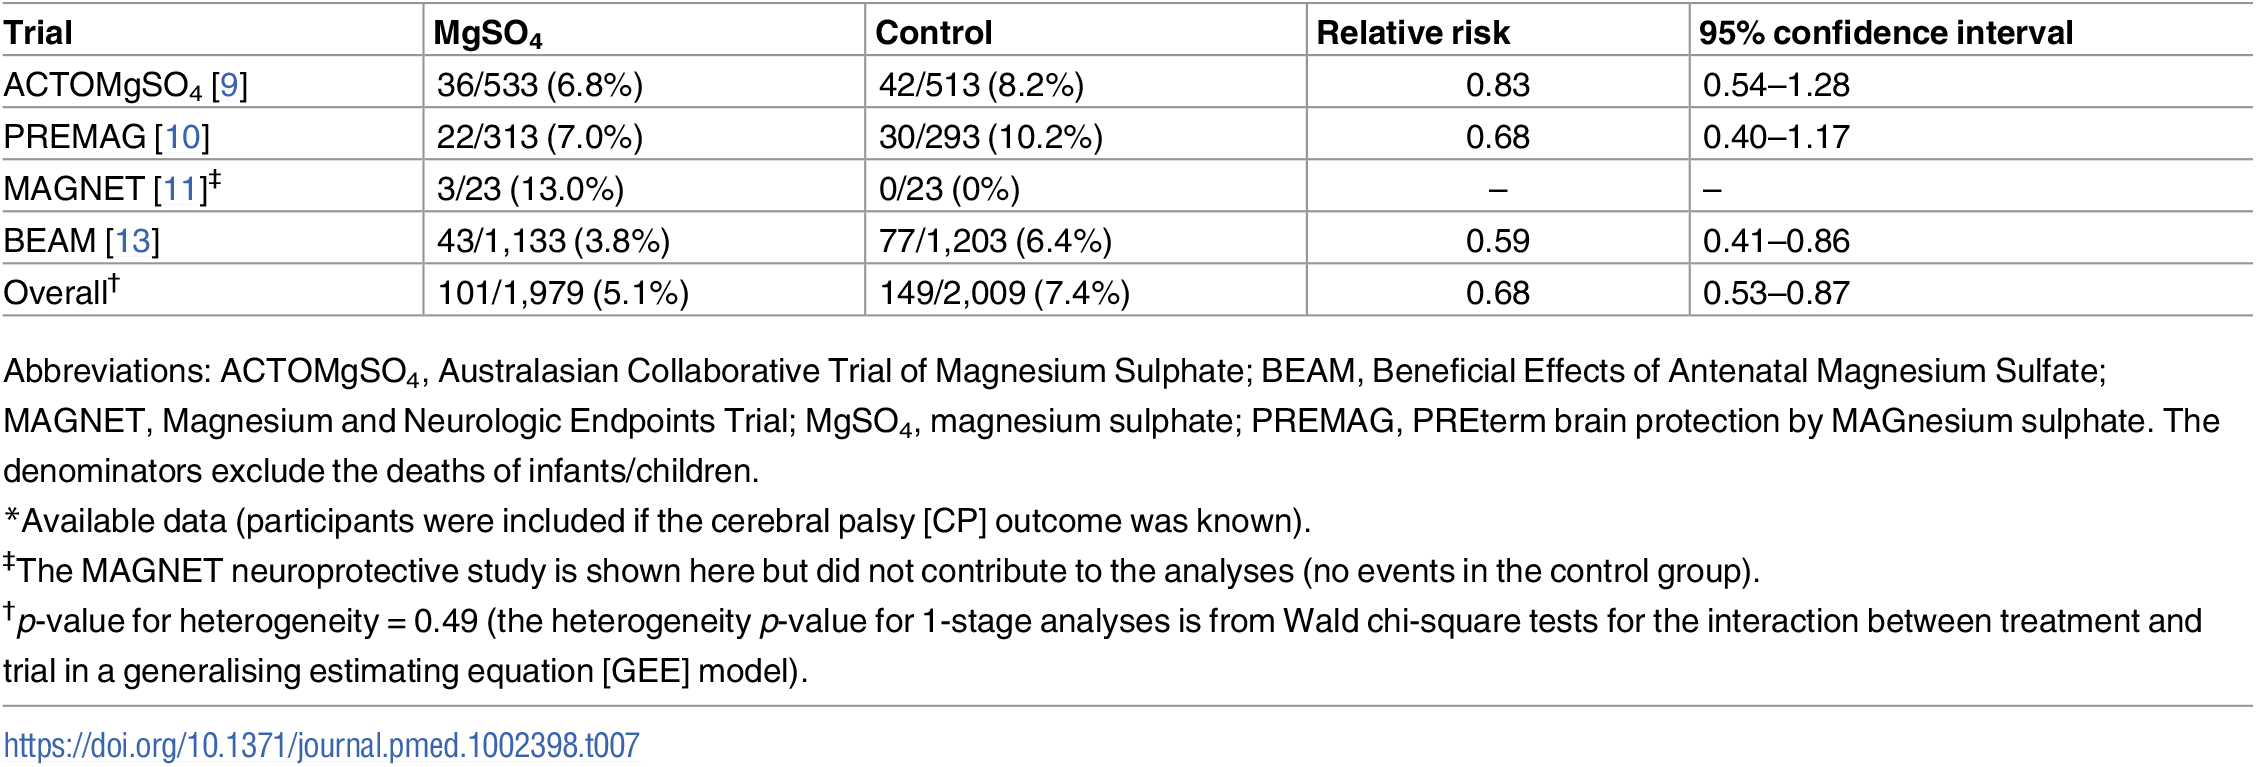 Cerebral palsy (sensitivity analysis: trials with a primary intent of fetal neuroprotection)<em class=&quot;ref&quot;>*</em>.